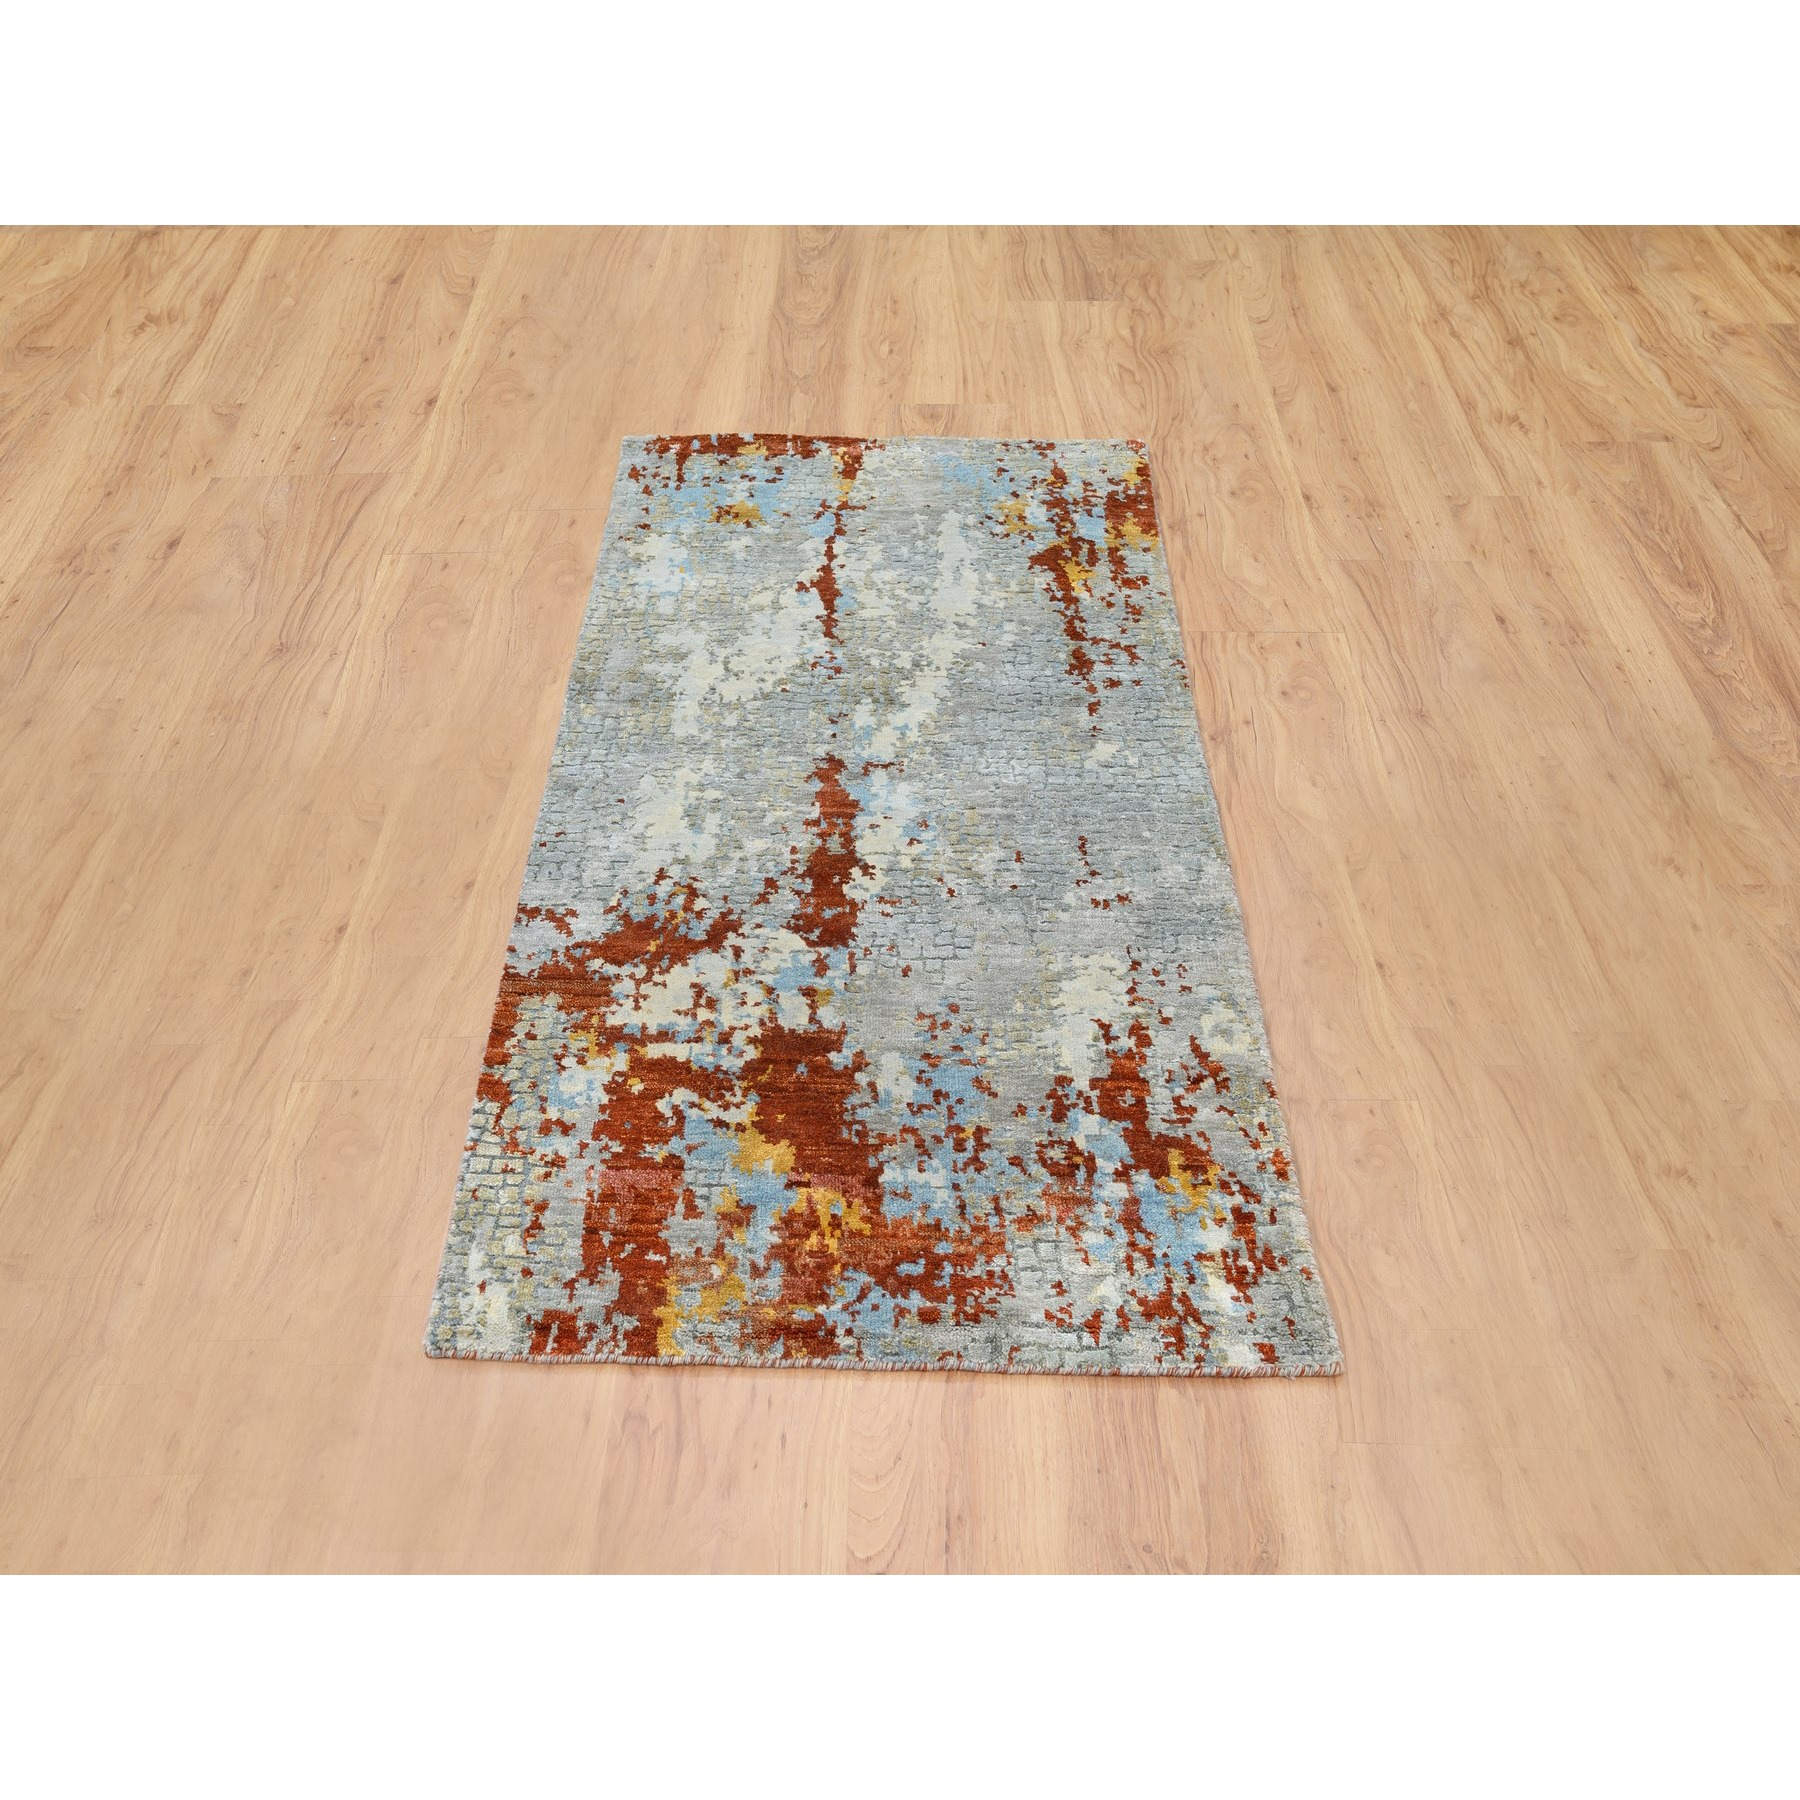 "2'6""x5'10"" Wool & Silk Abstract Fire Mosaic Hand Knotted Runner Rug"